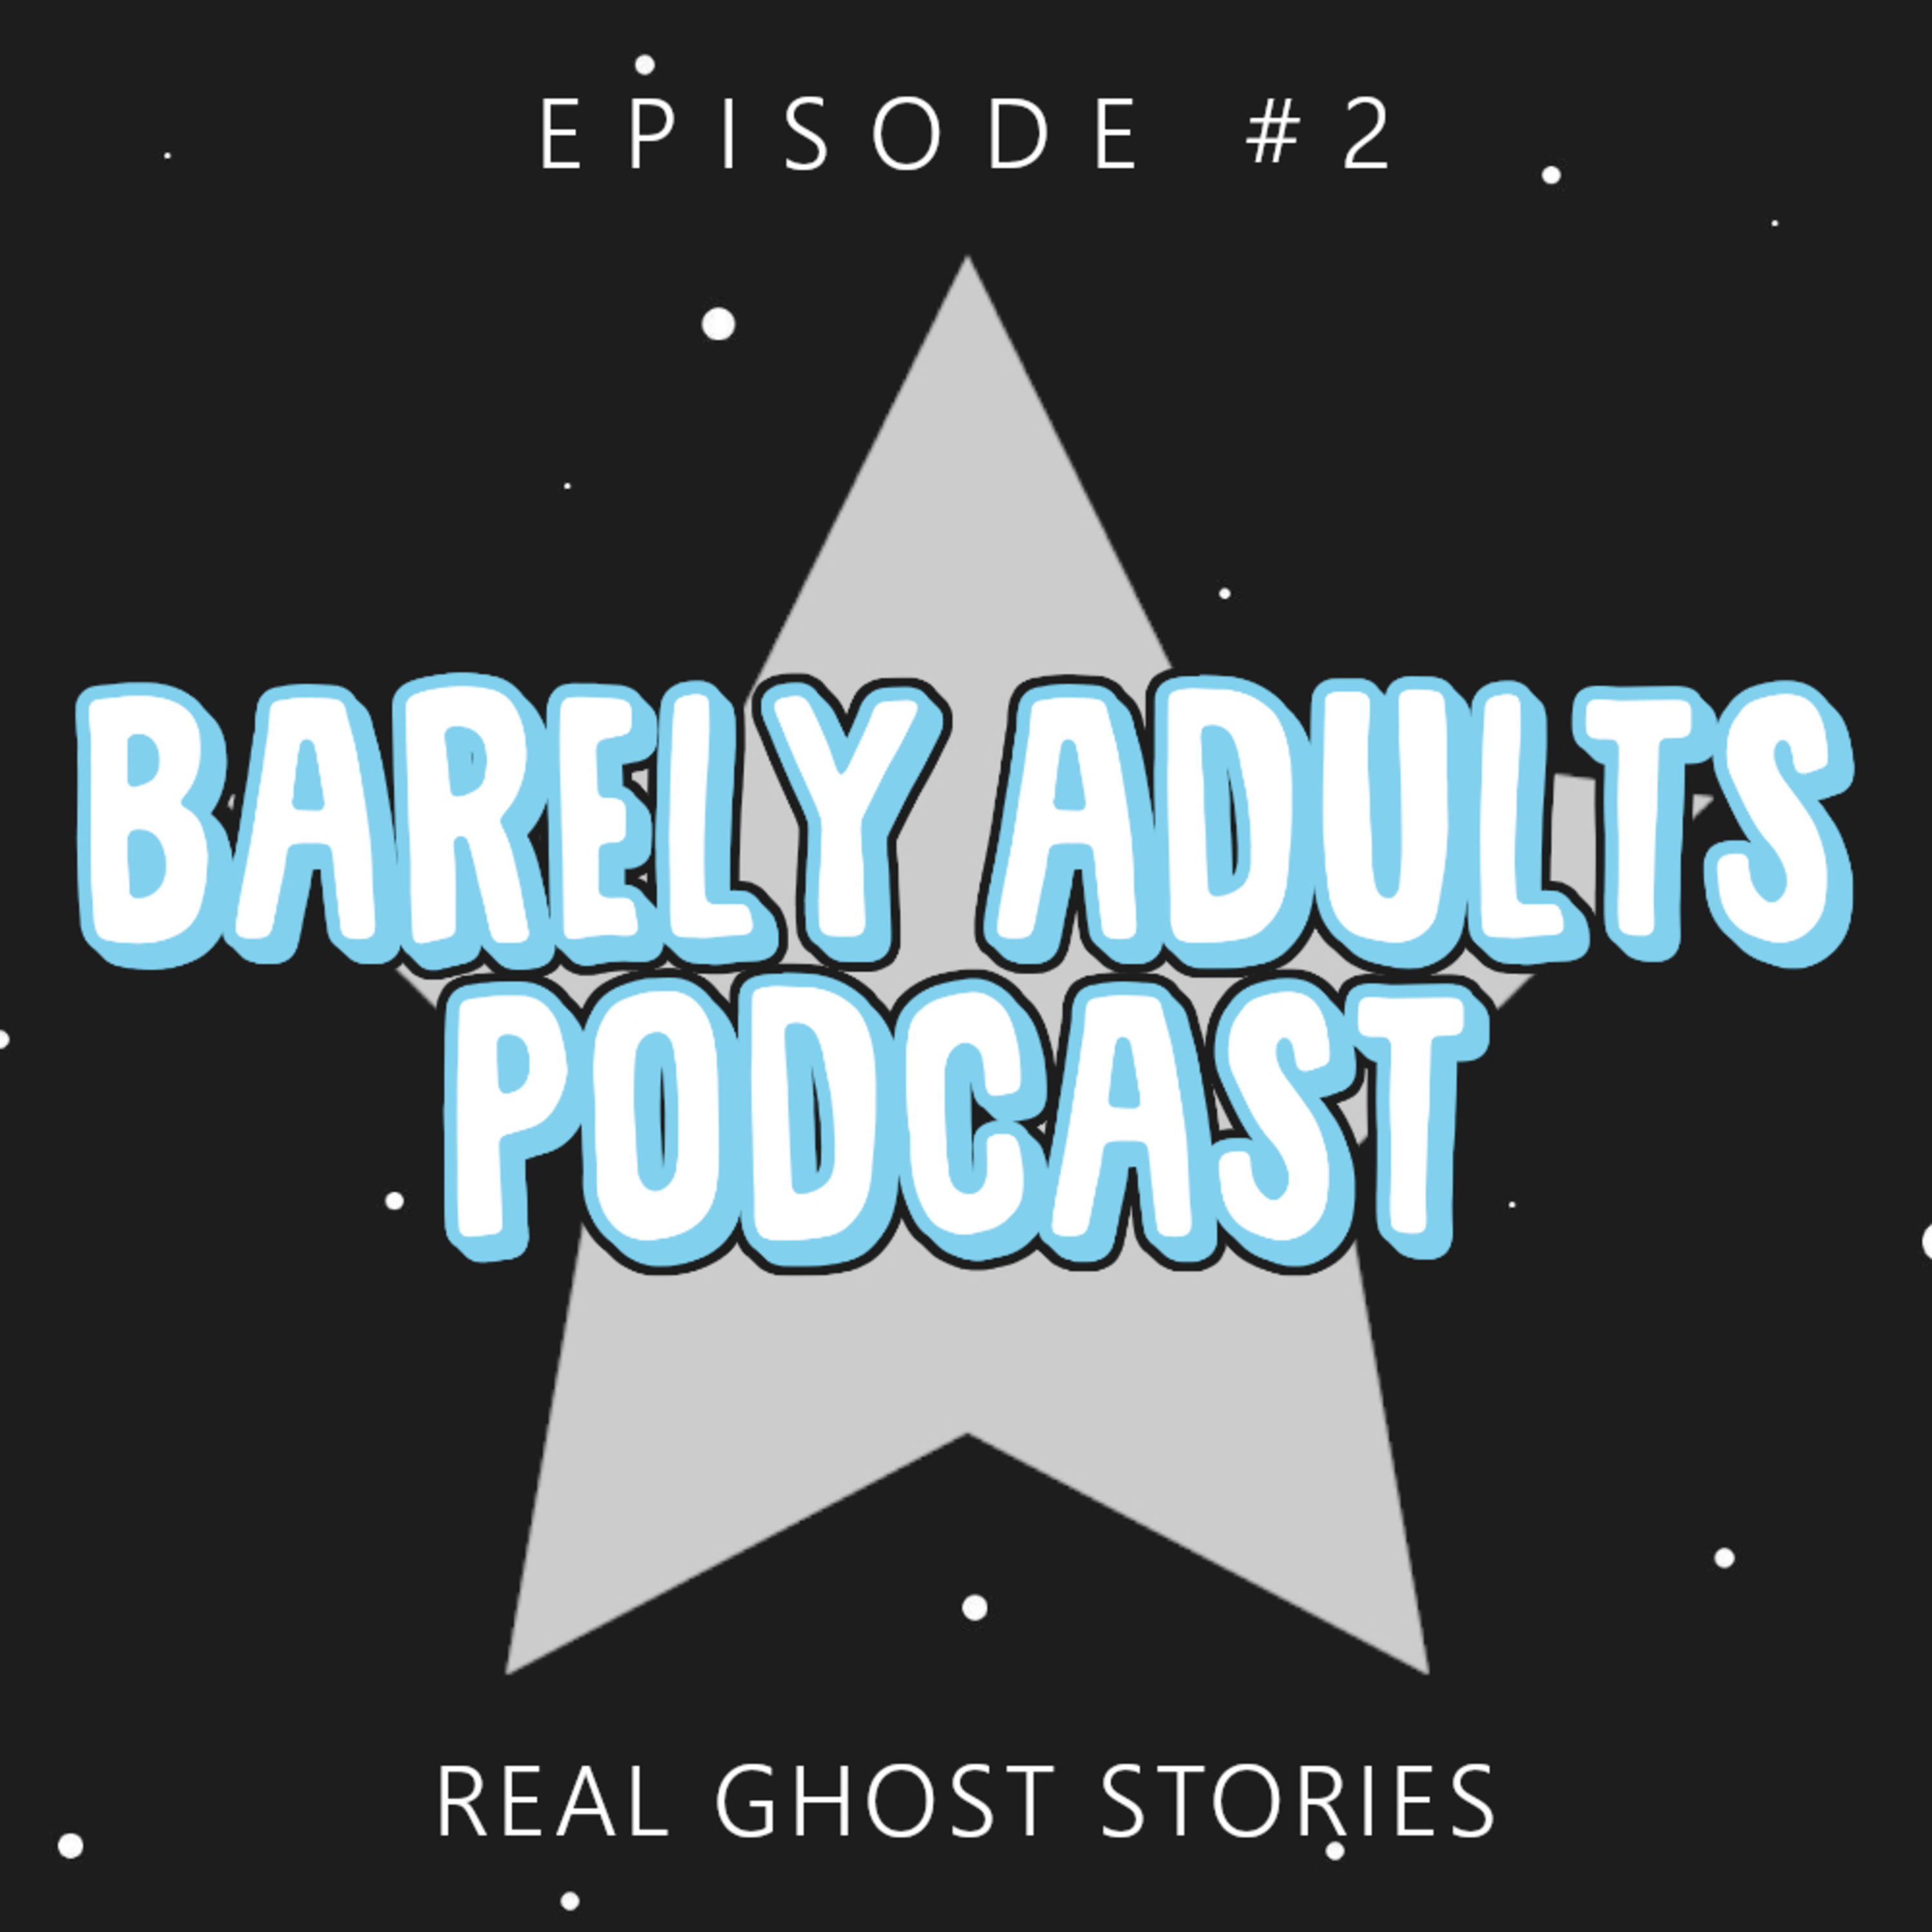 REAL Ghost Stories | Barely Adults Podcast #2